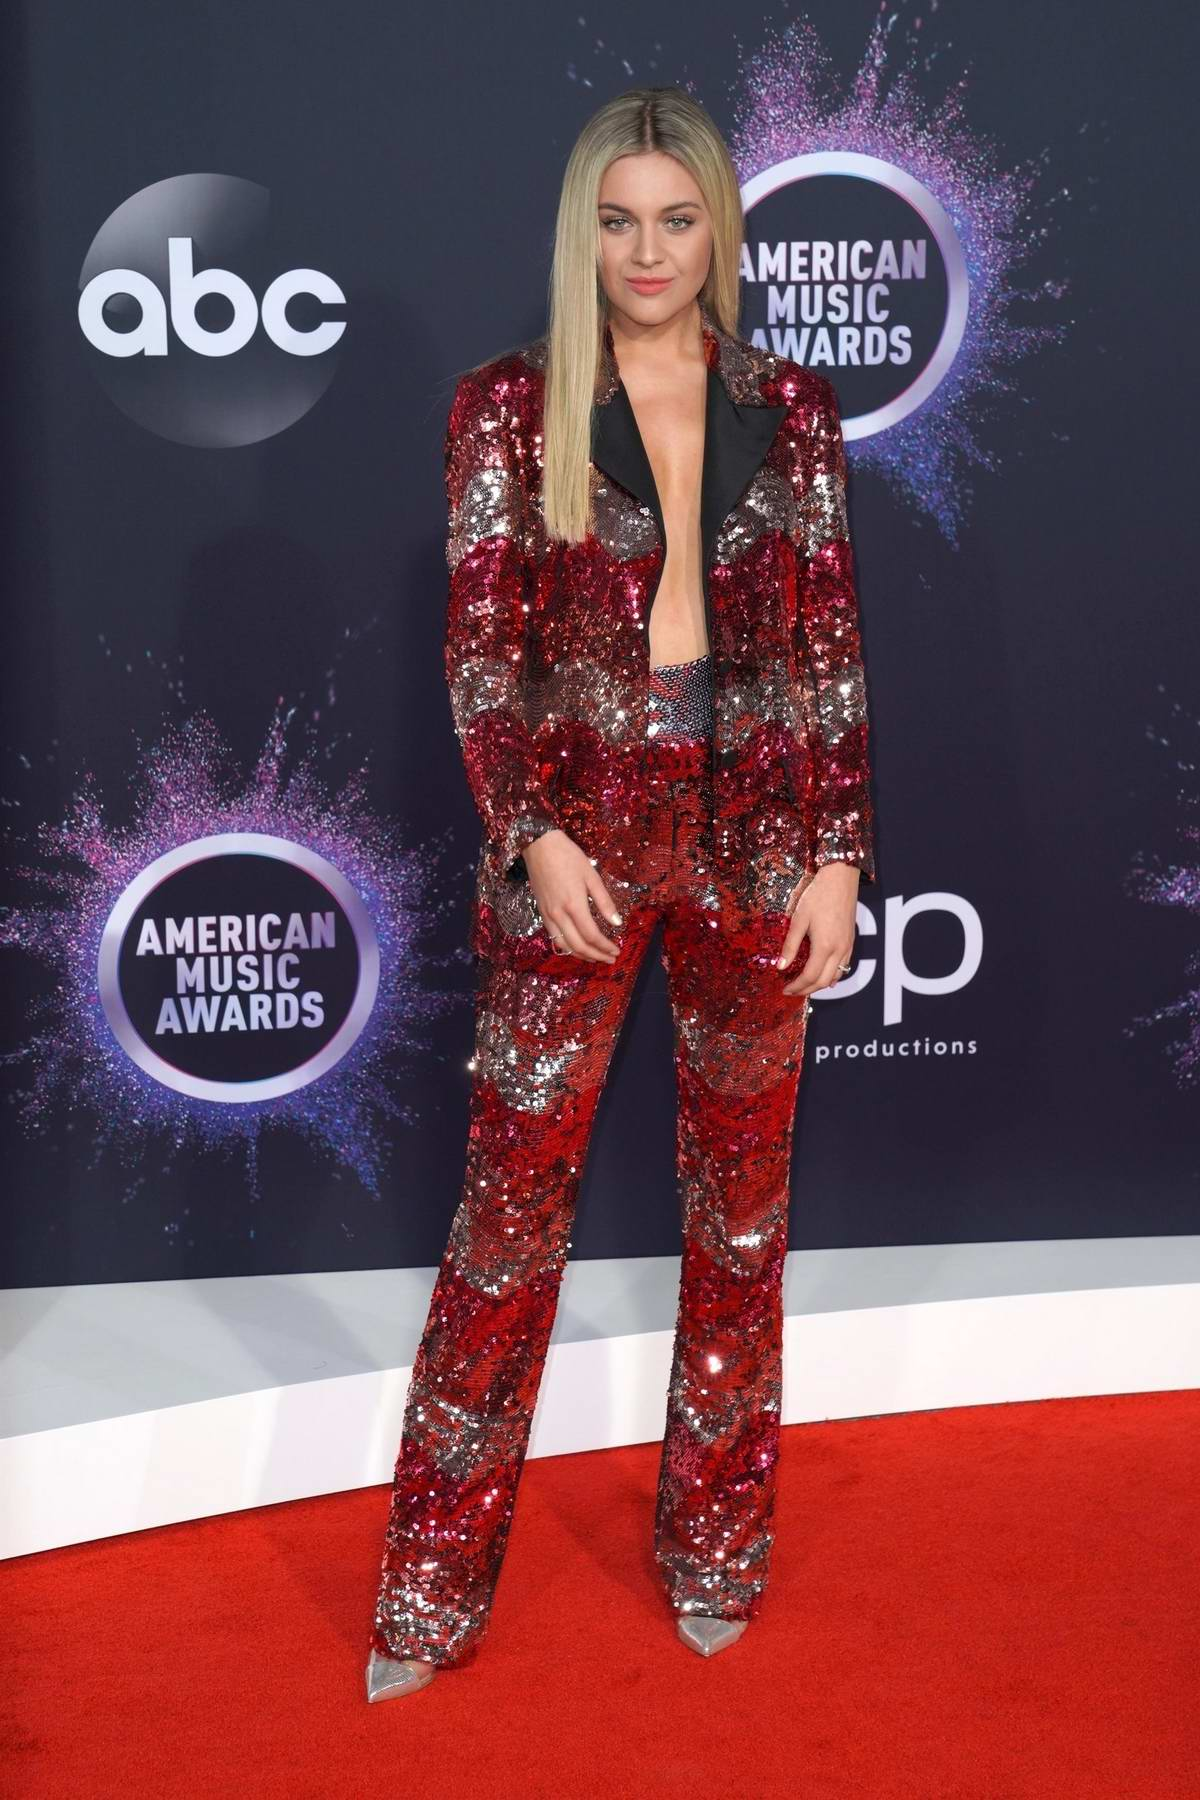 Kelsea Ballerini Attends The American Music Awards At